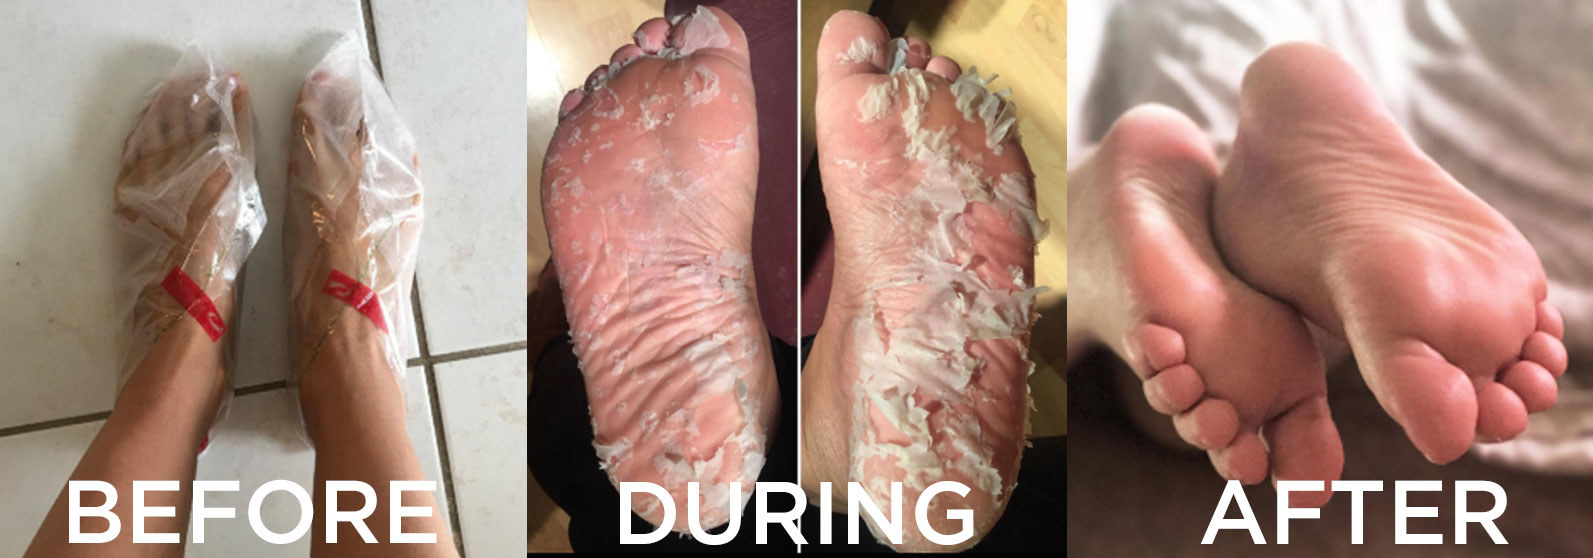 before: feet in plastic socks during: feet peeling all over in big chunks after: smooth feet